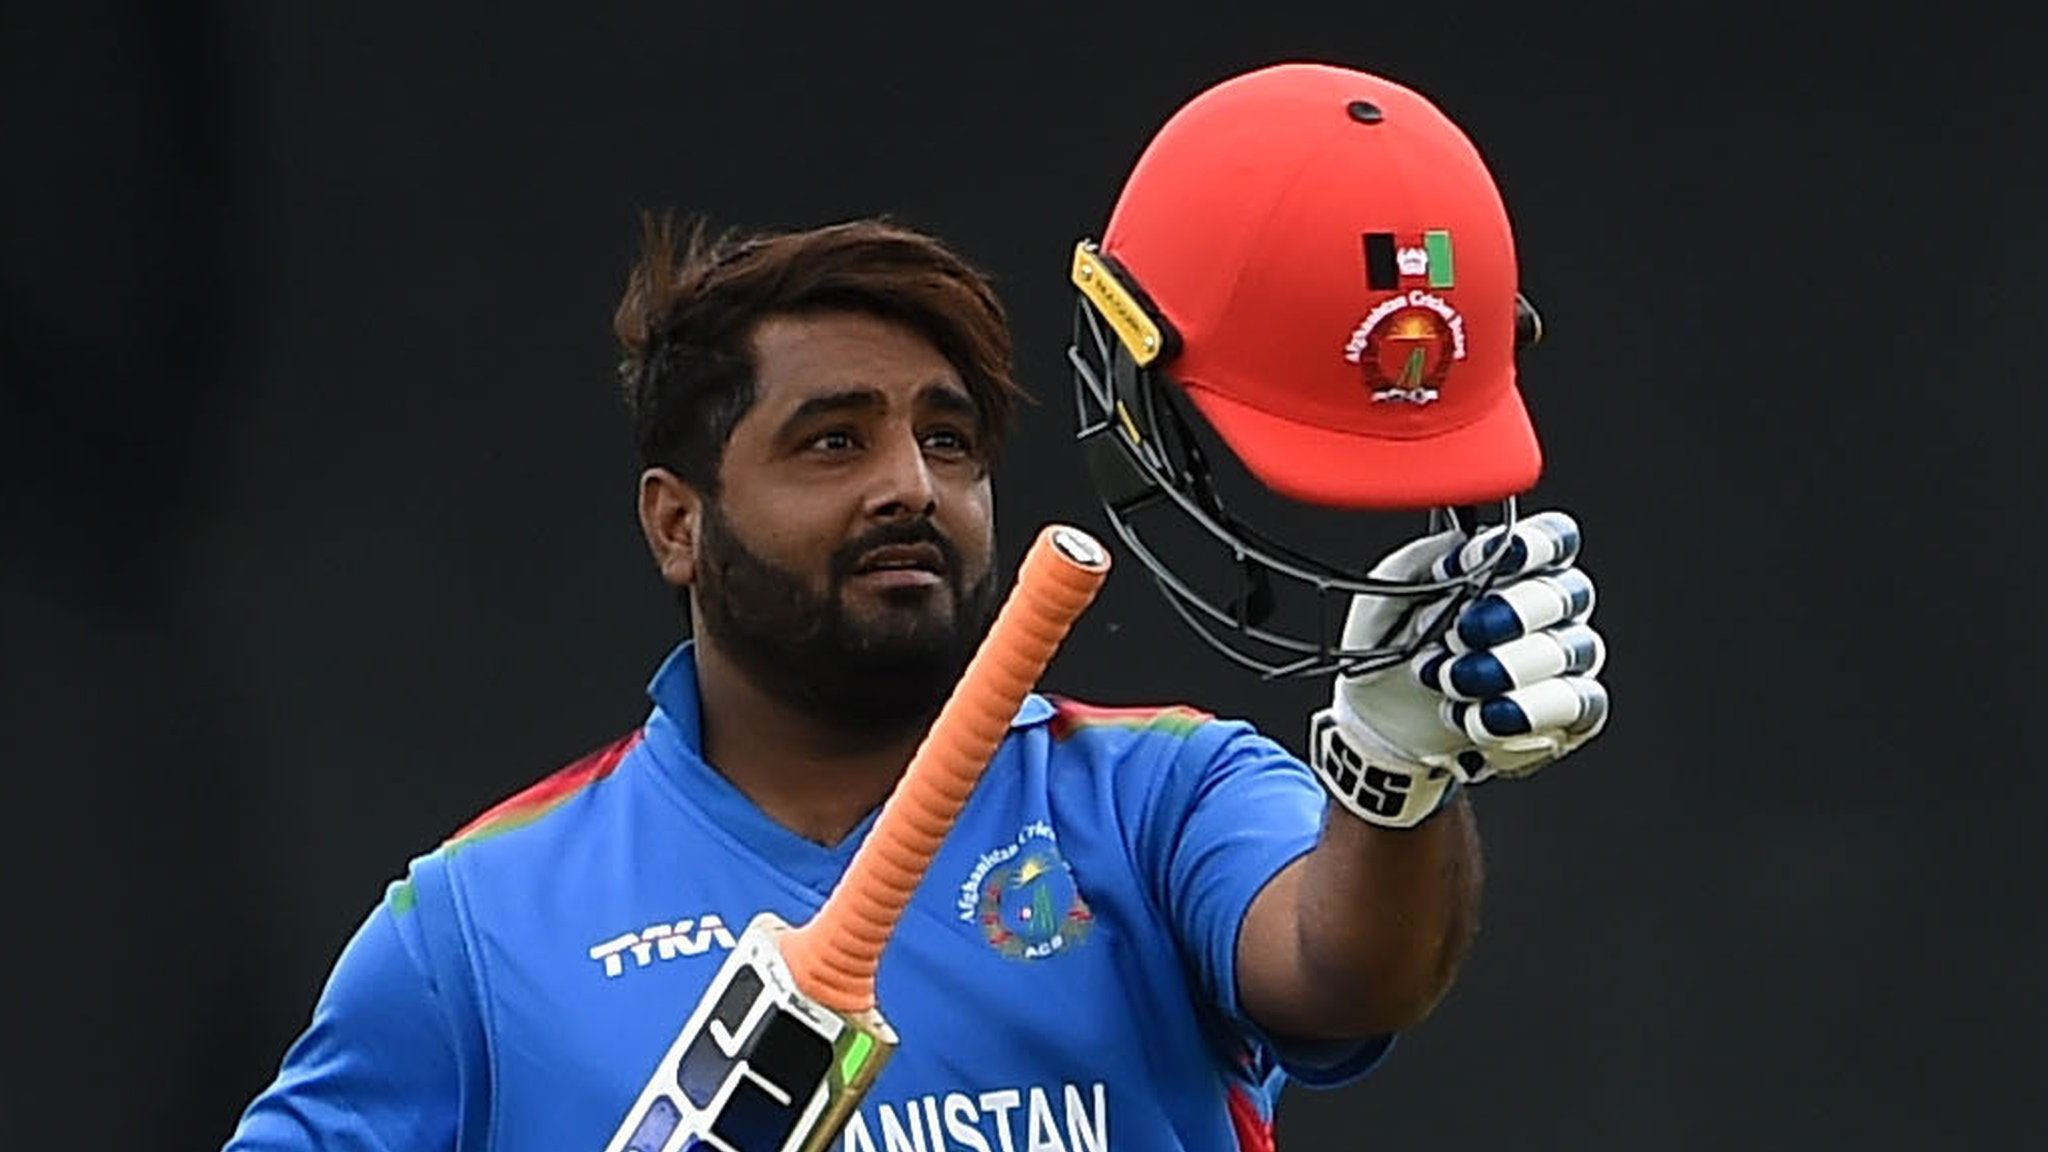 Ireland v Afghanistan: Mohammad Shahzad hits century as visitors level series